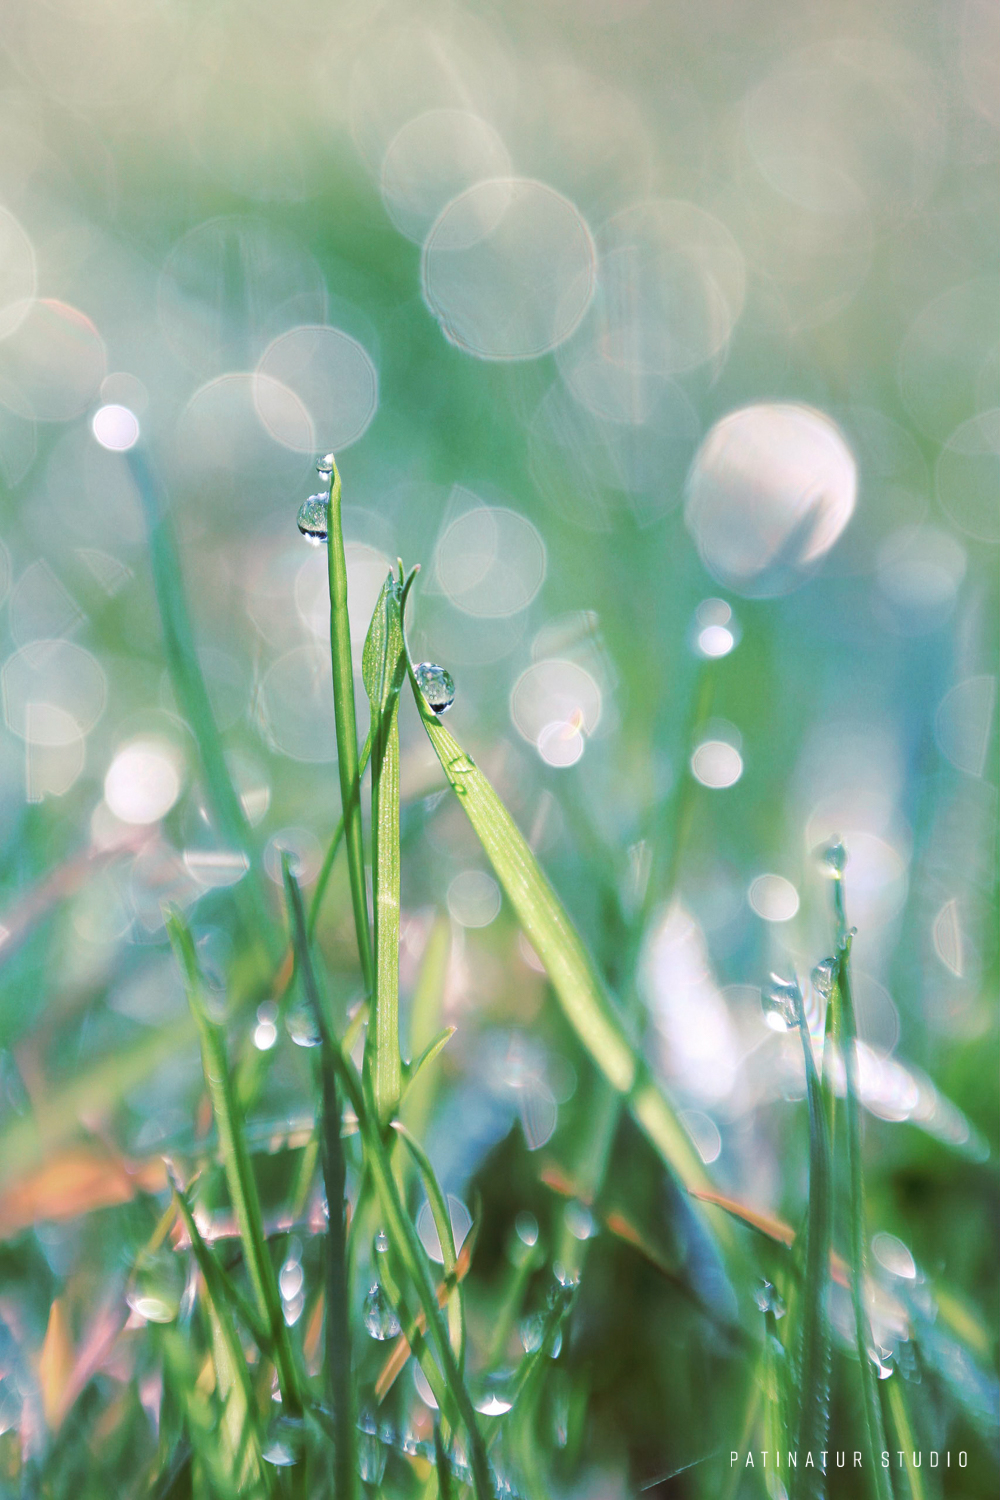 Photo art | Abstract close-up of grass with morning dew.